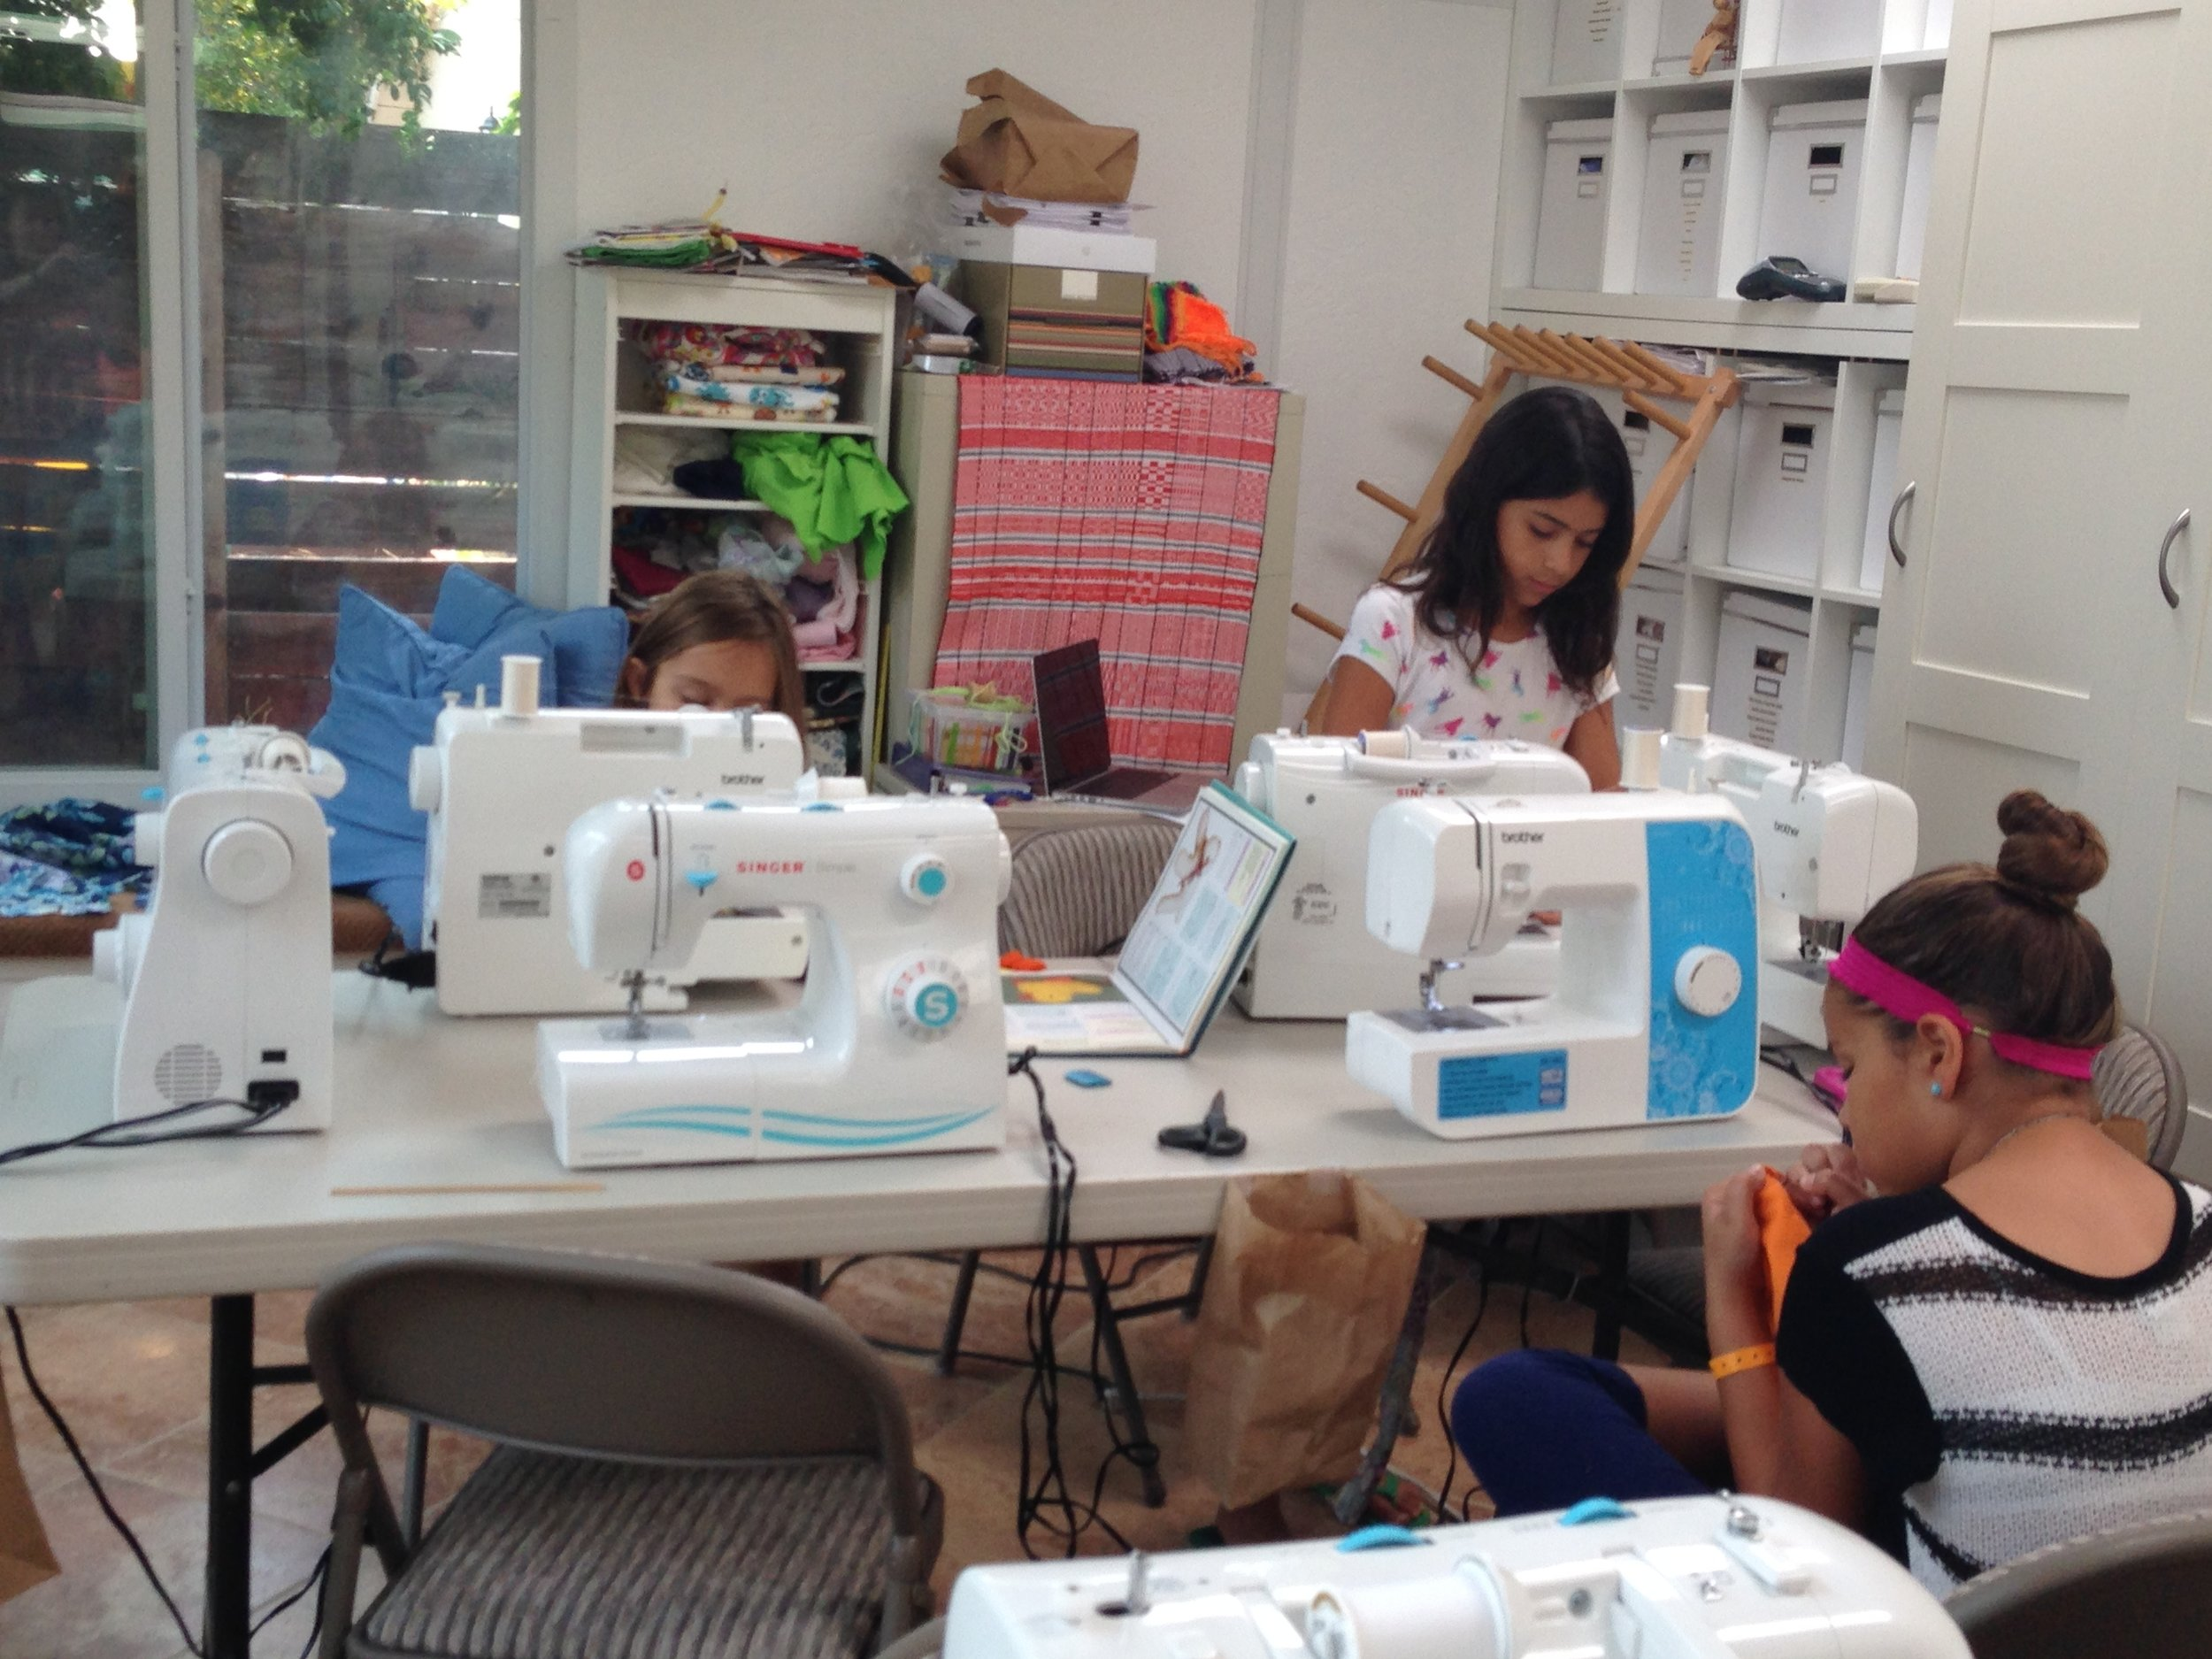 Sewing on machines.